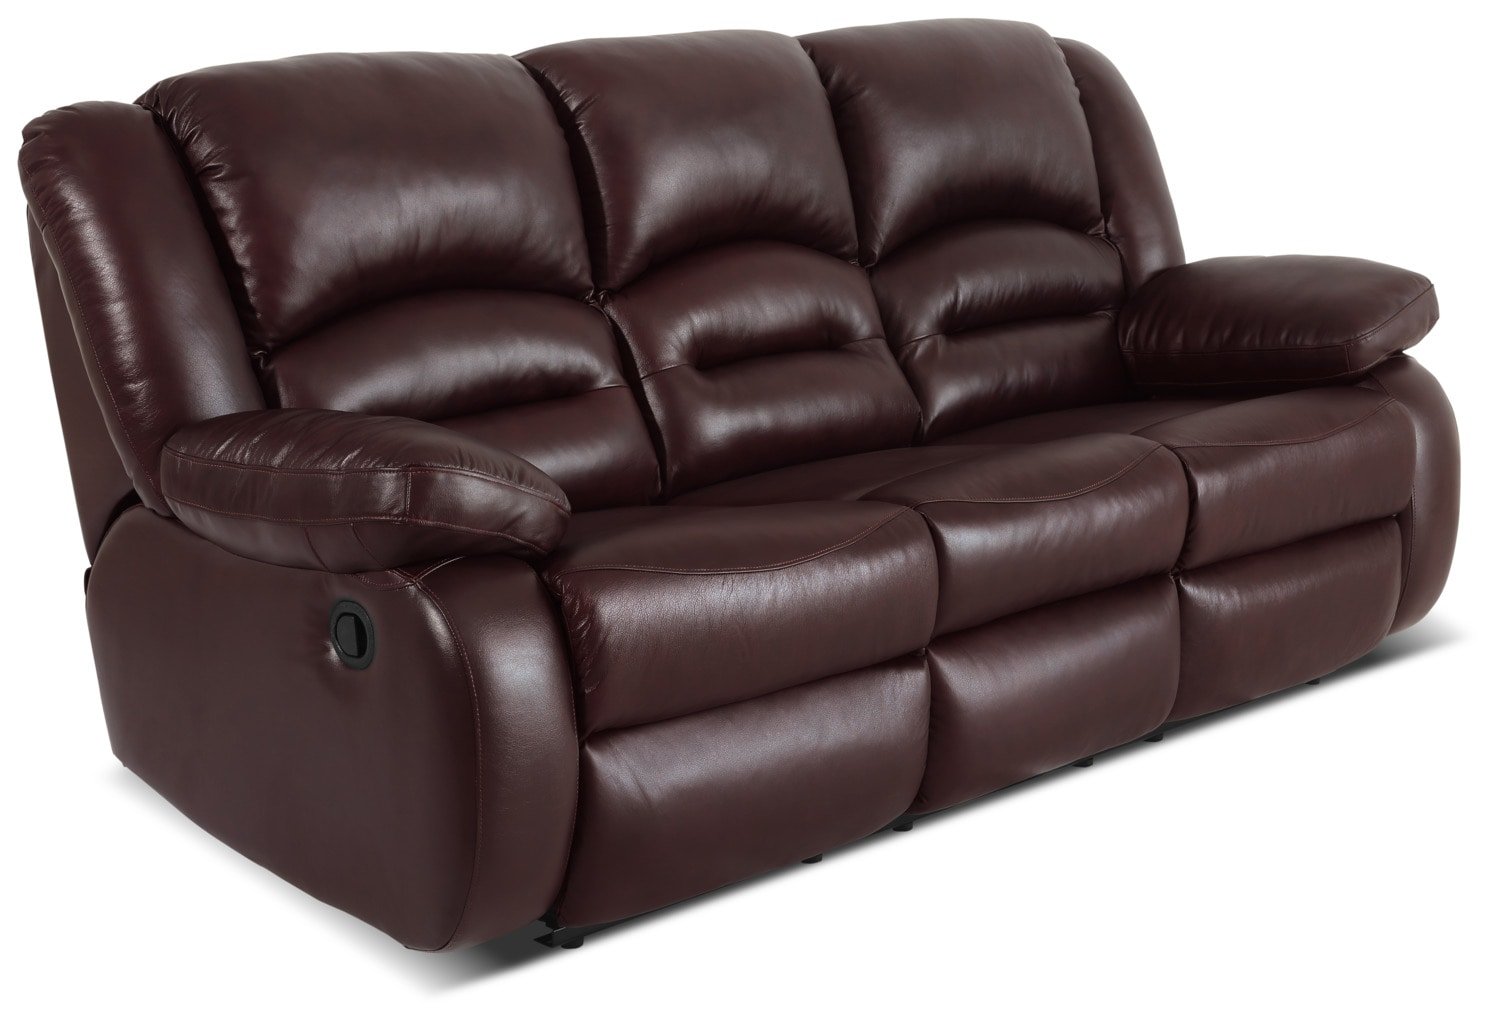 Toreno genuine leather reclining sofa burgundy the brick Burgundy leather loveseat